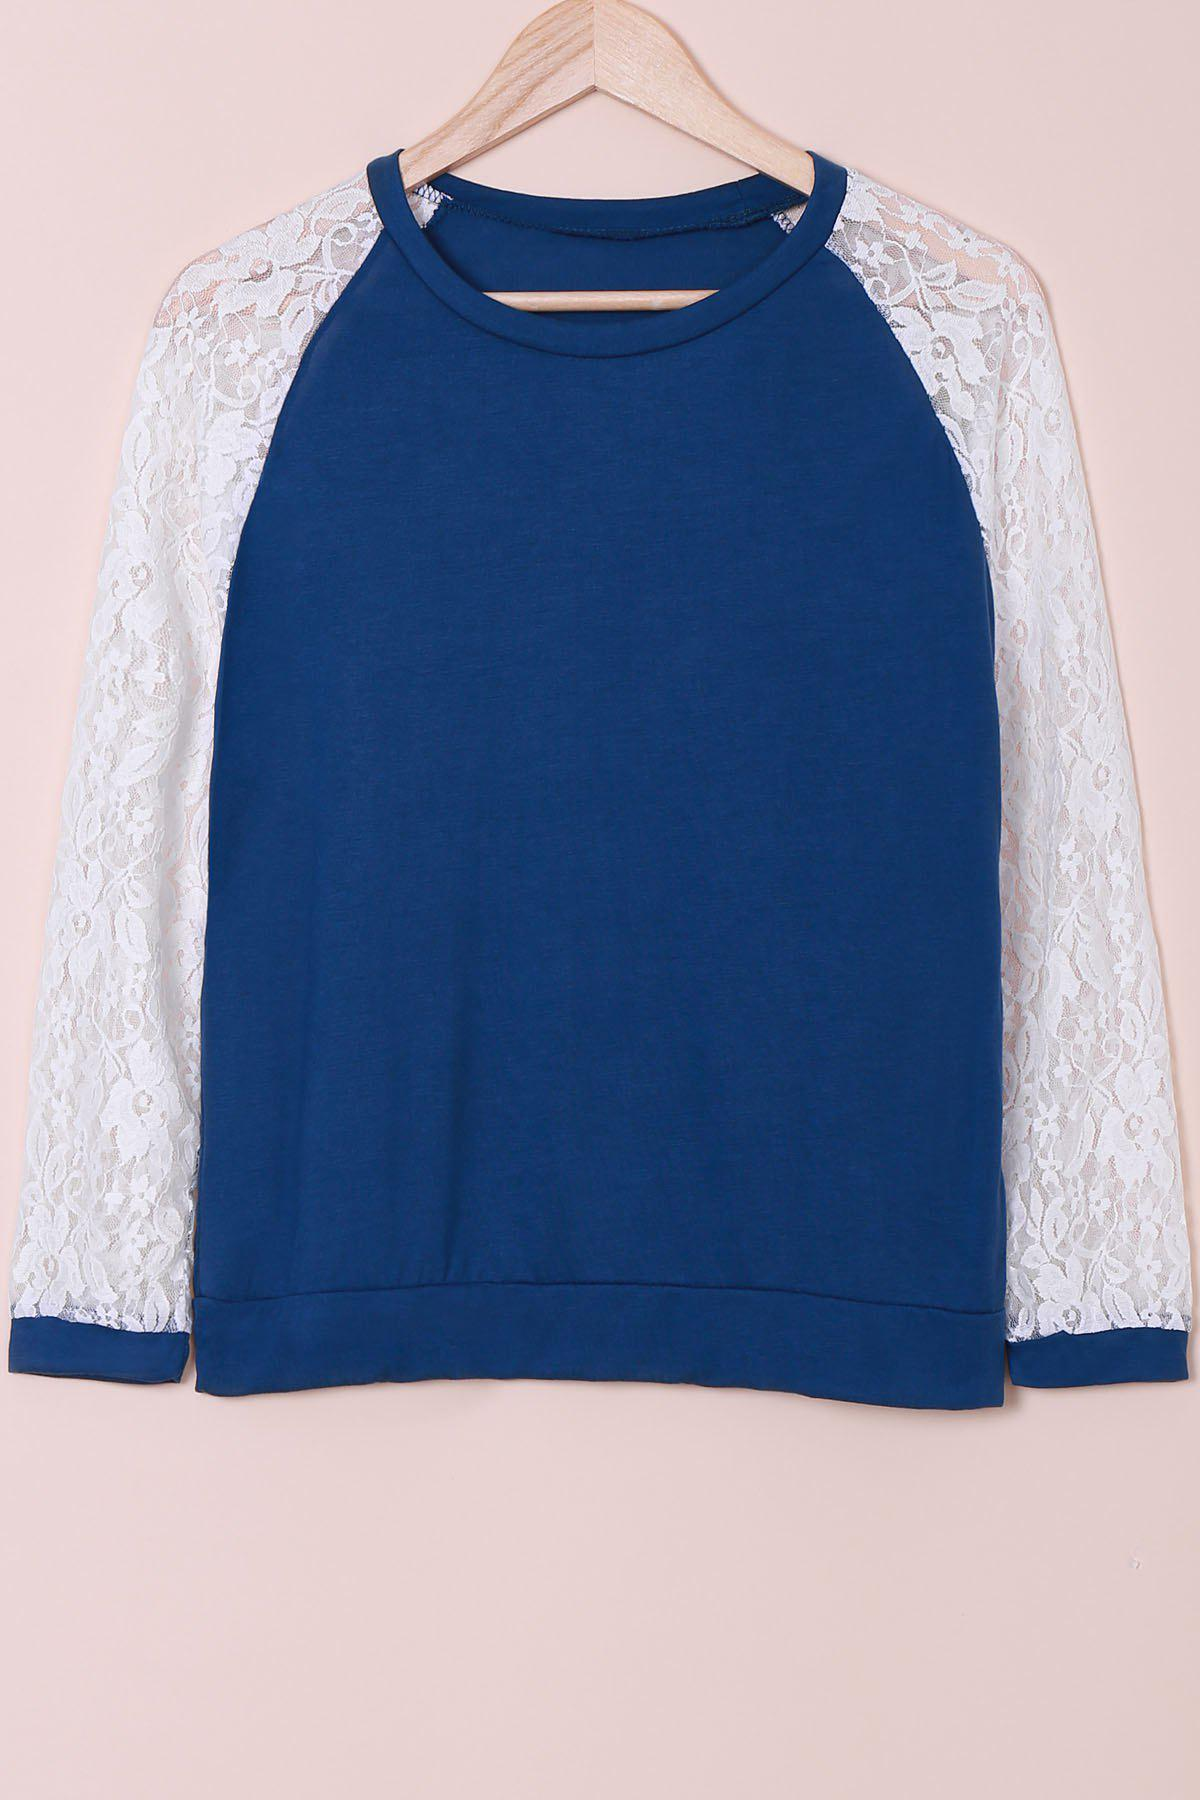 Sweet Lace Splicing Round Neck Long Sleeve Sweatshirt For Women - BLUE L